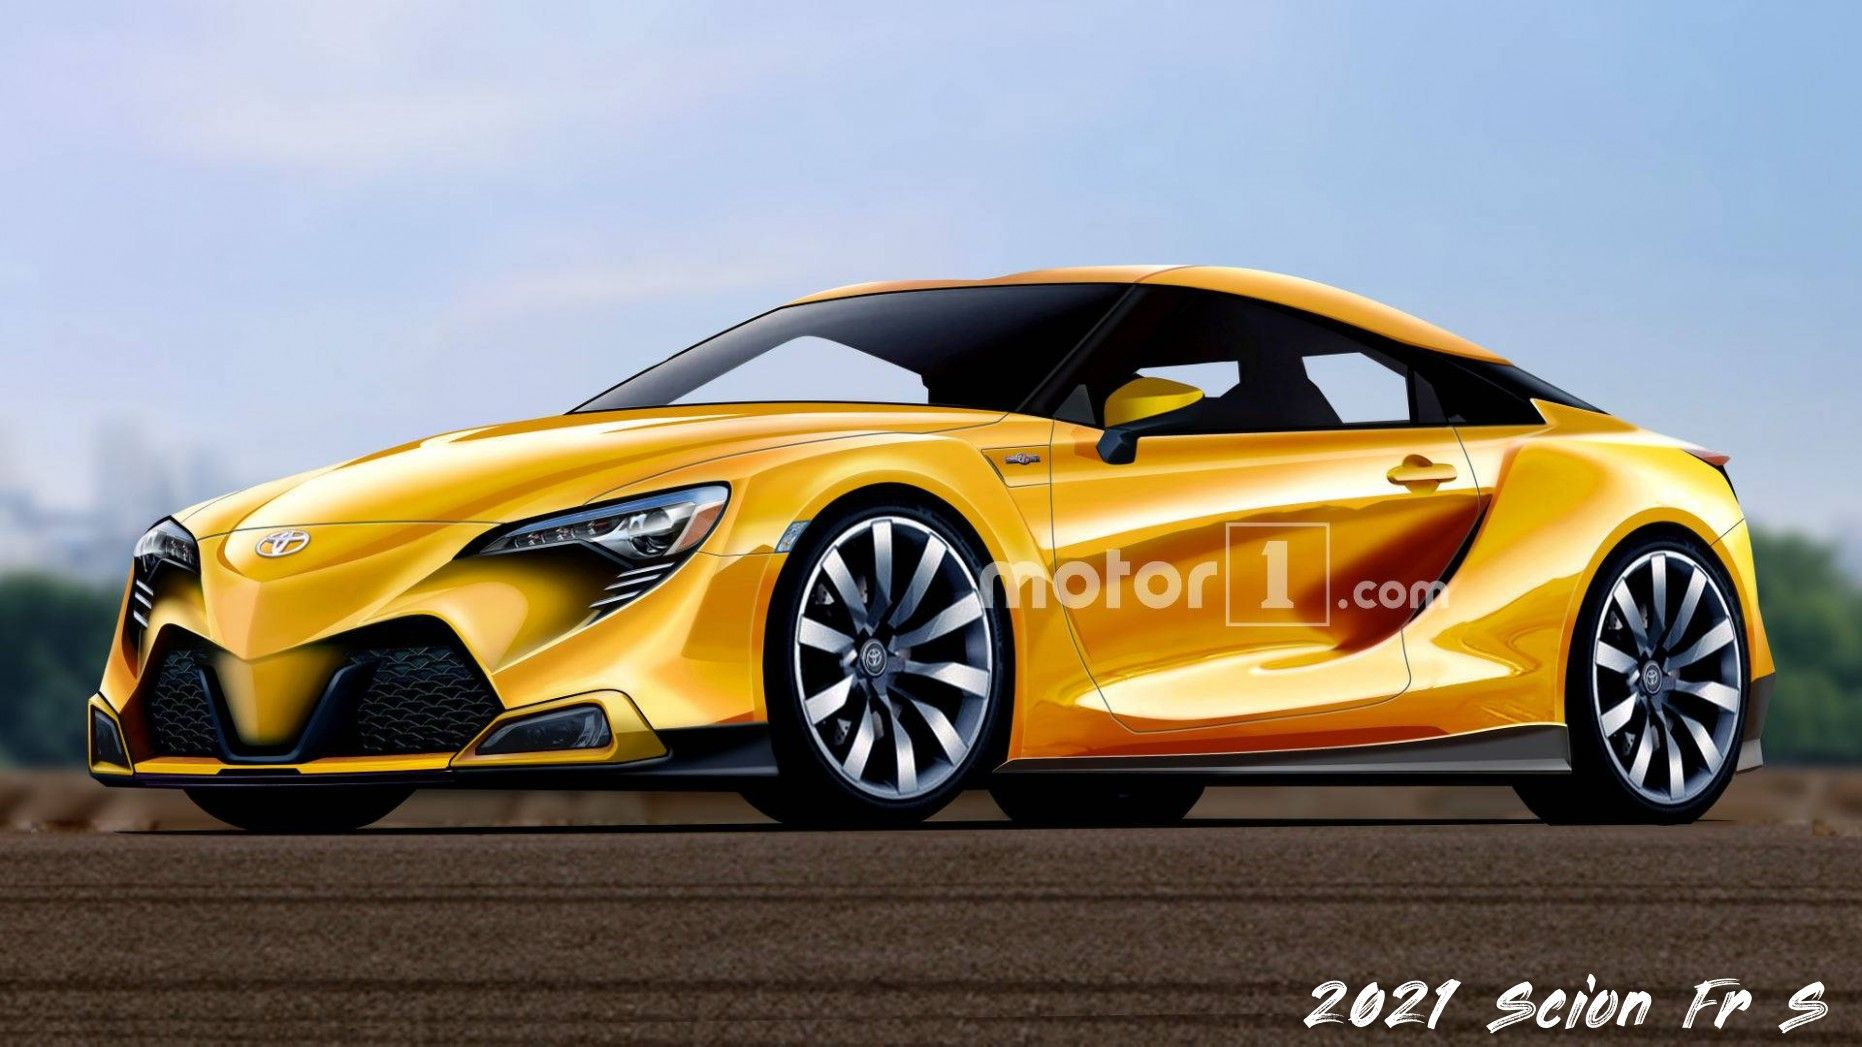 2021 Scion Fr S First Drive in 2020 Sports car, Toyota